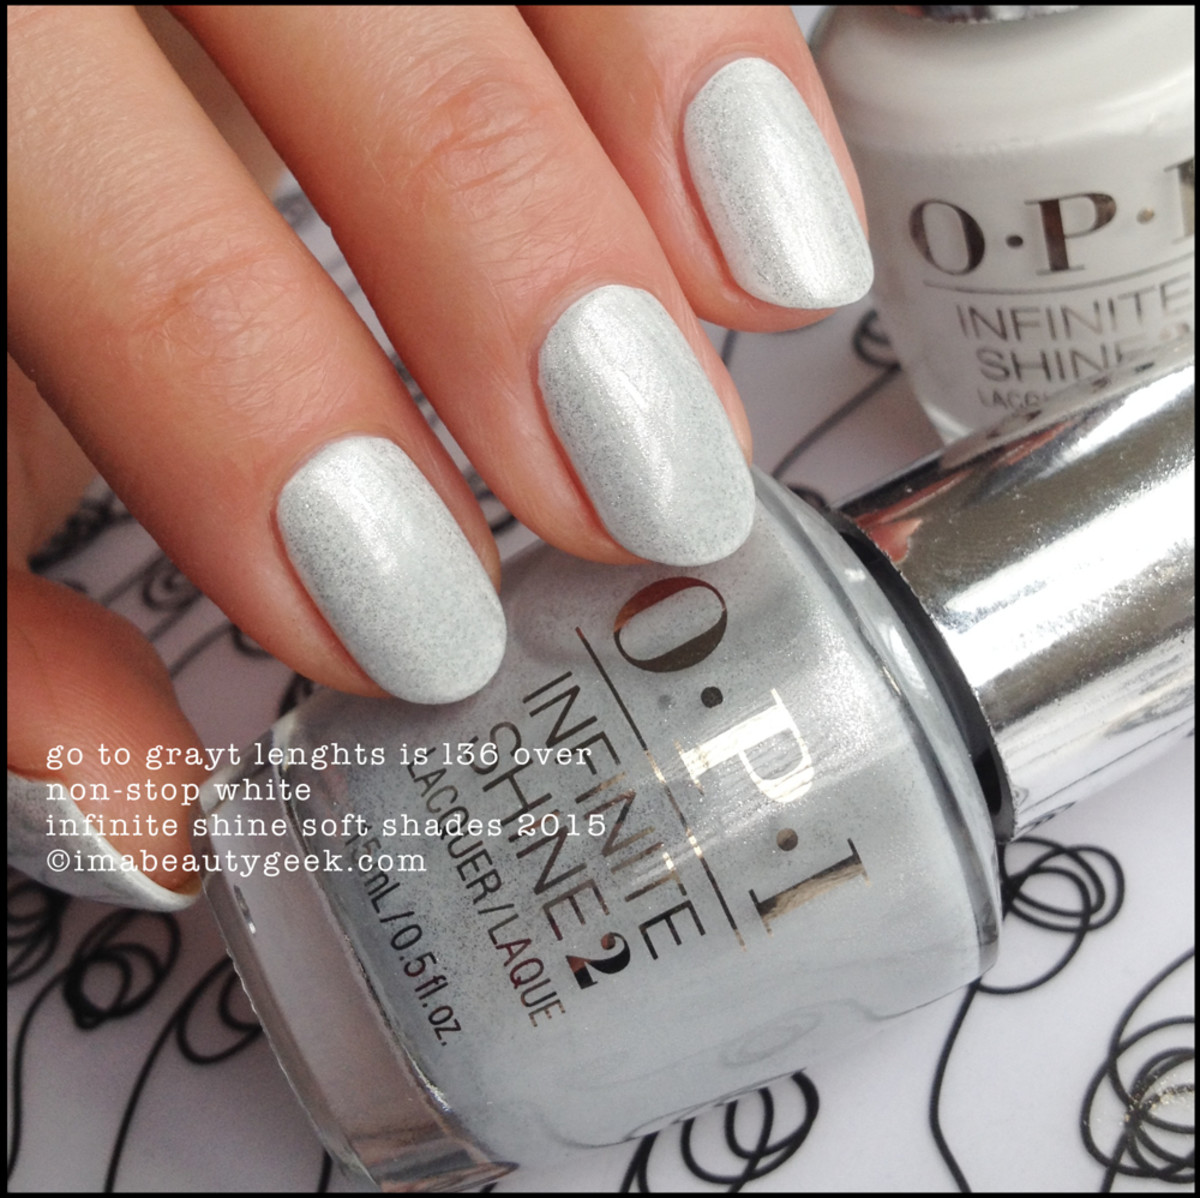 OPI Go To Grayt Lenghts OPI Infinite Shine Soft Shades 2015